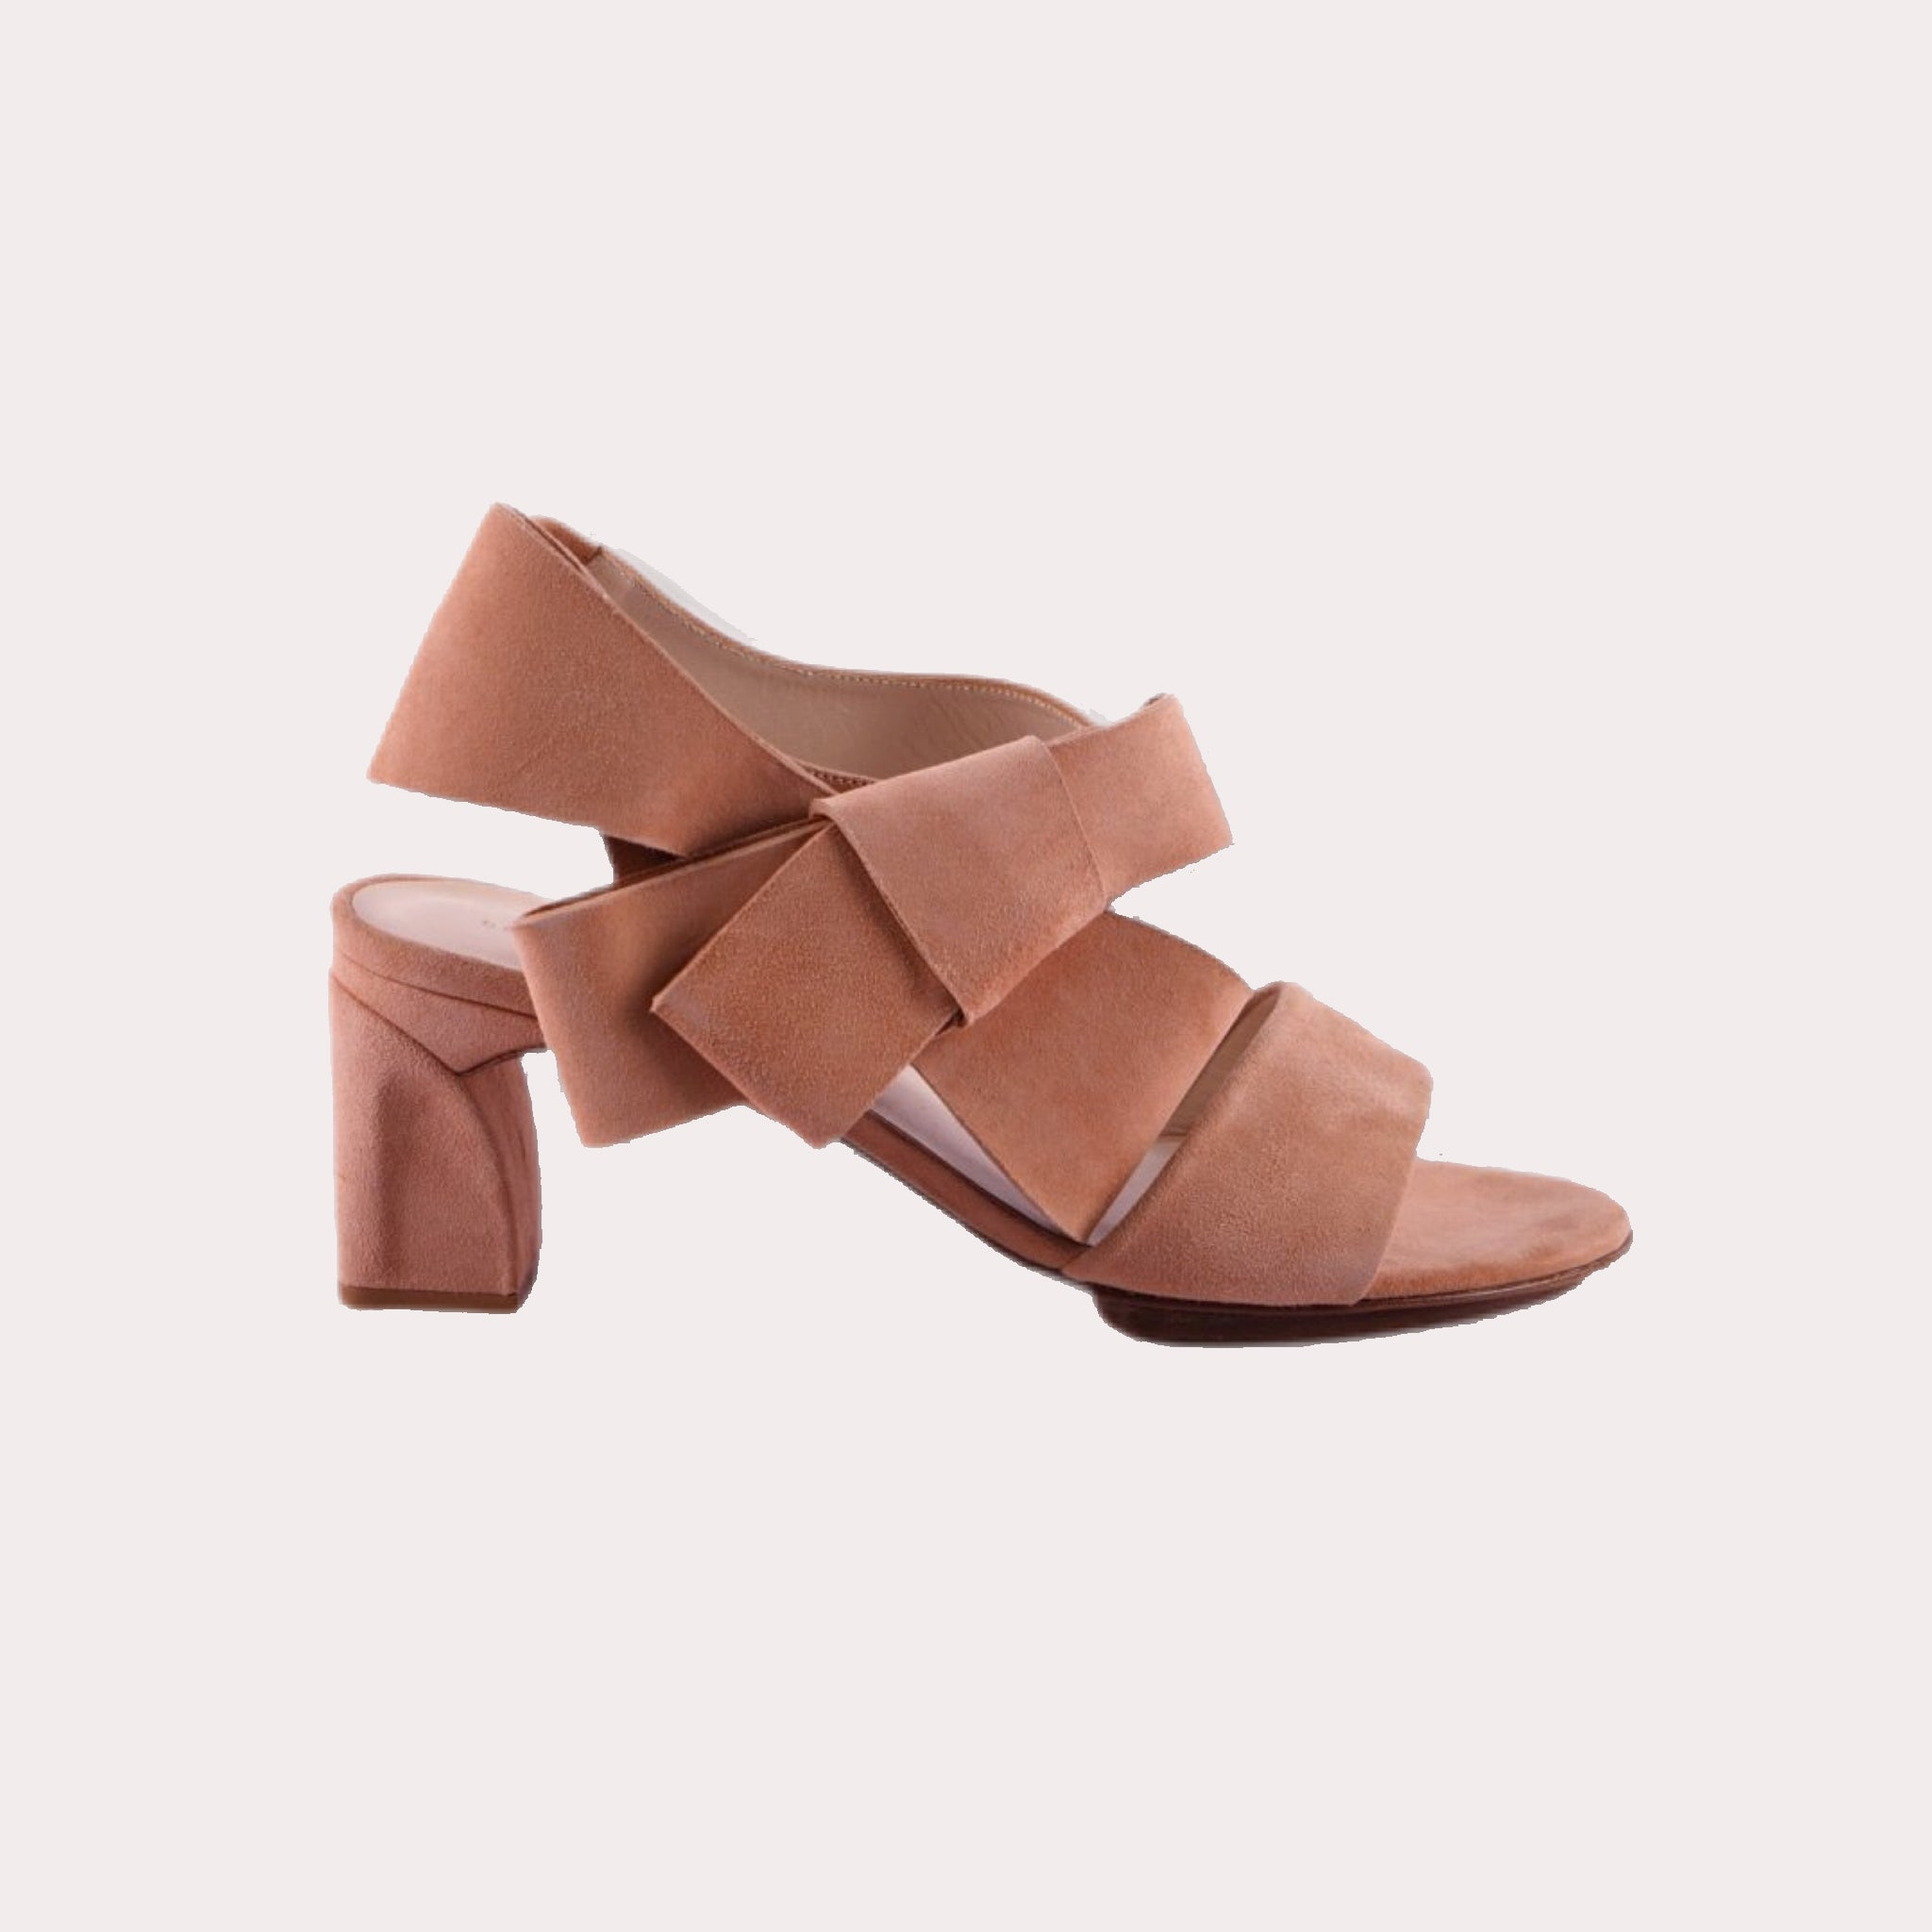 Bow Sandal with High Heel